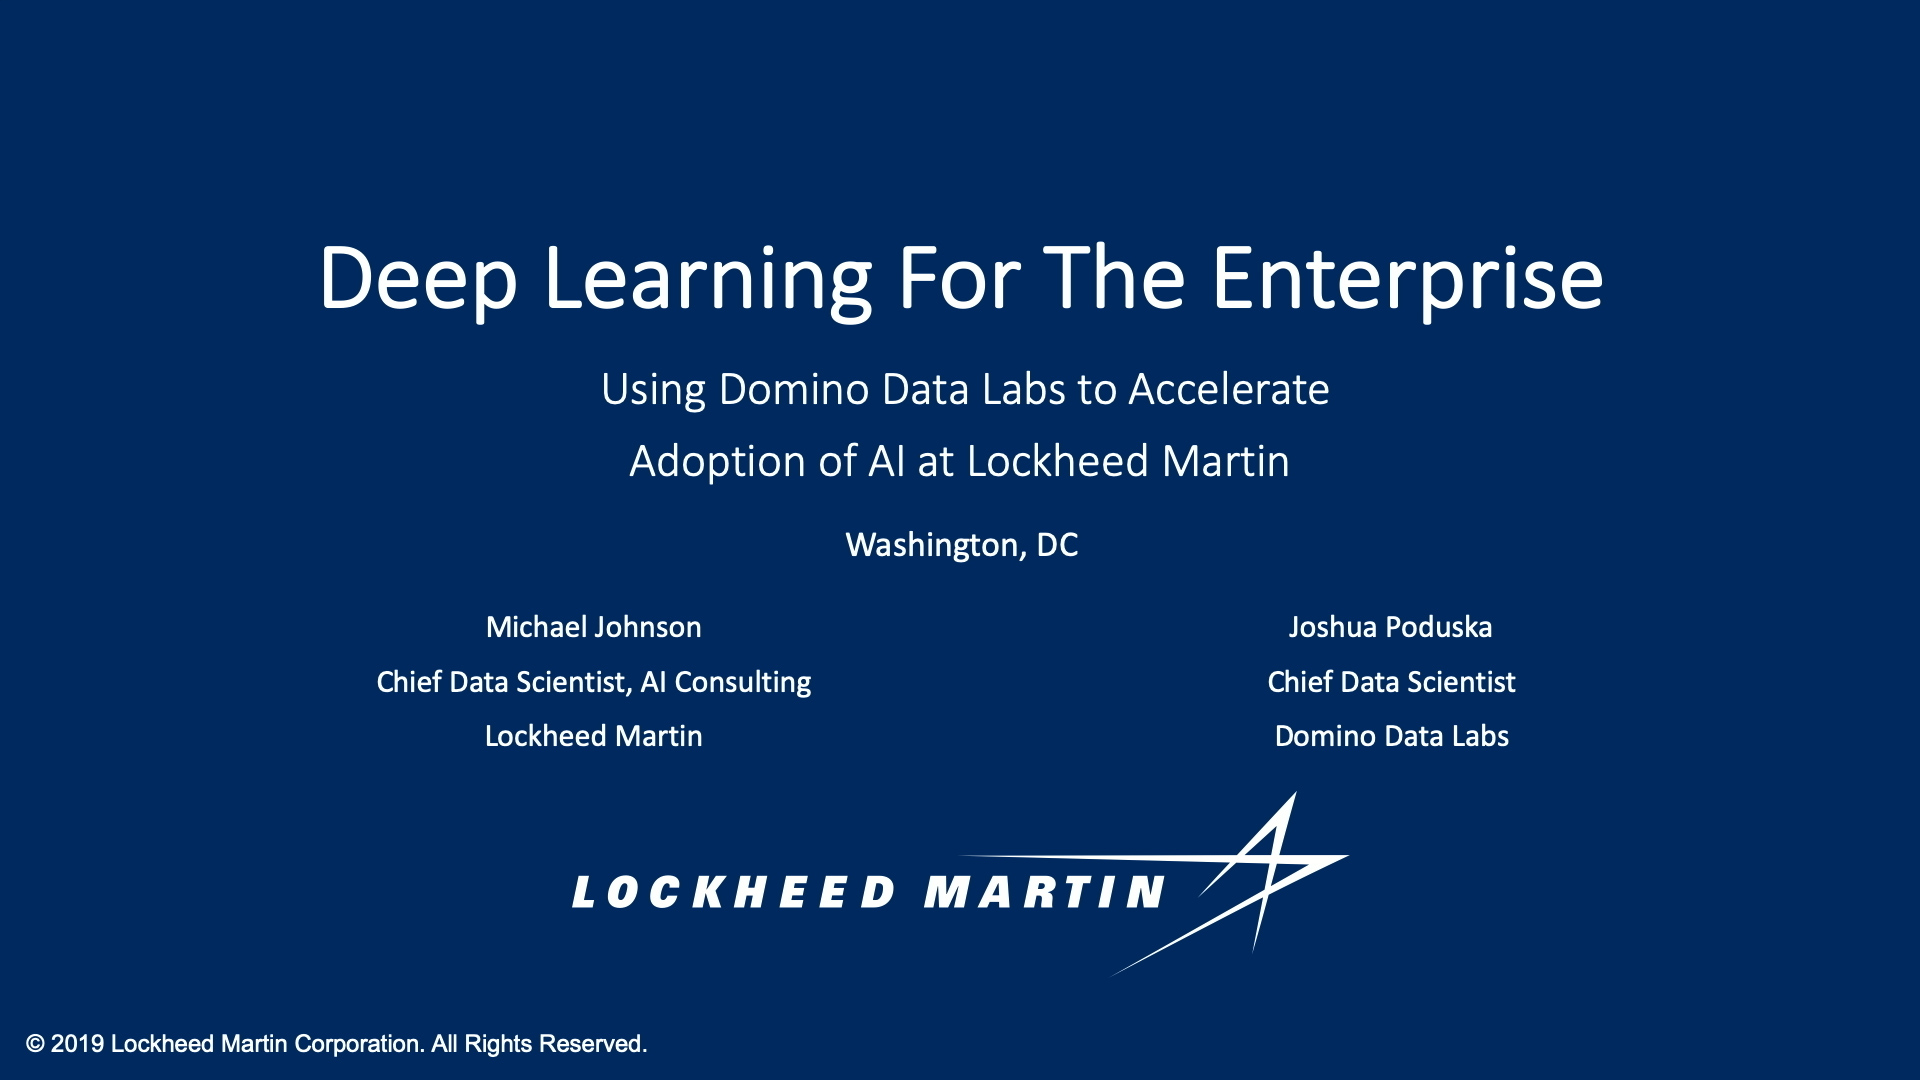 Deep Learning for Enterprise: Using Domino Data Lab to Accelerate AI Adoption at Lockheed Martin